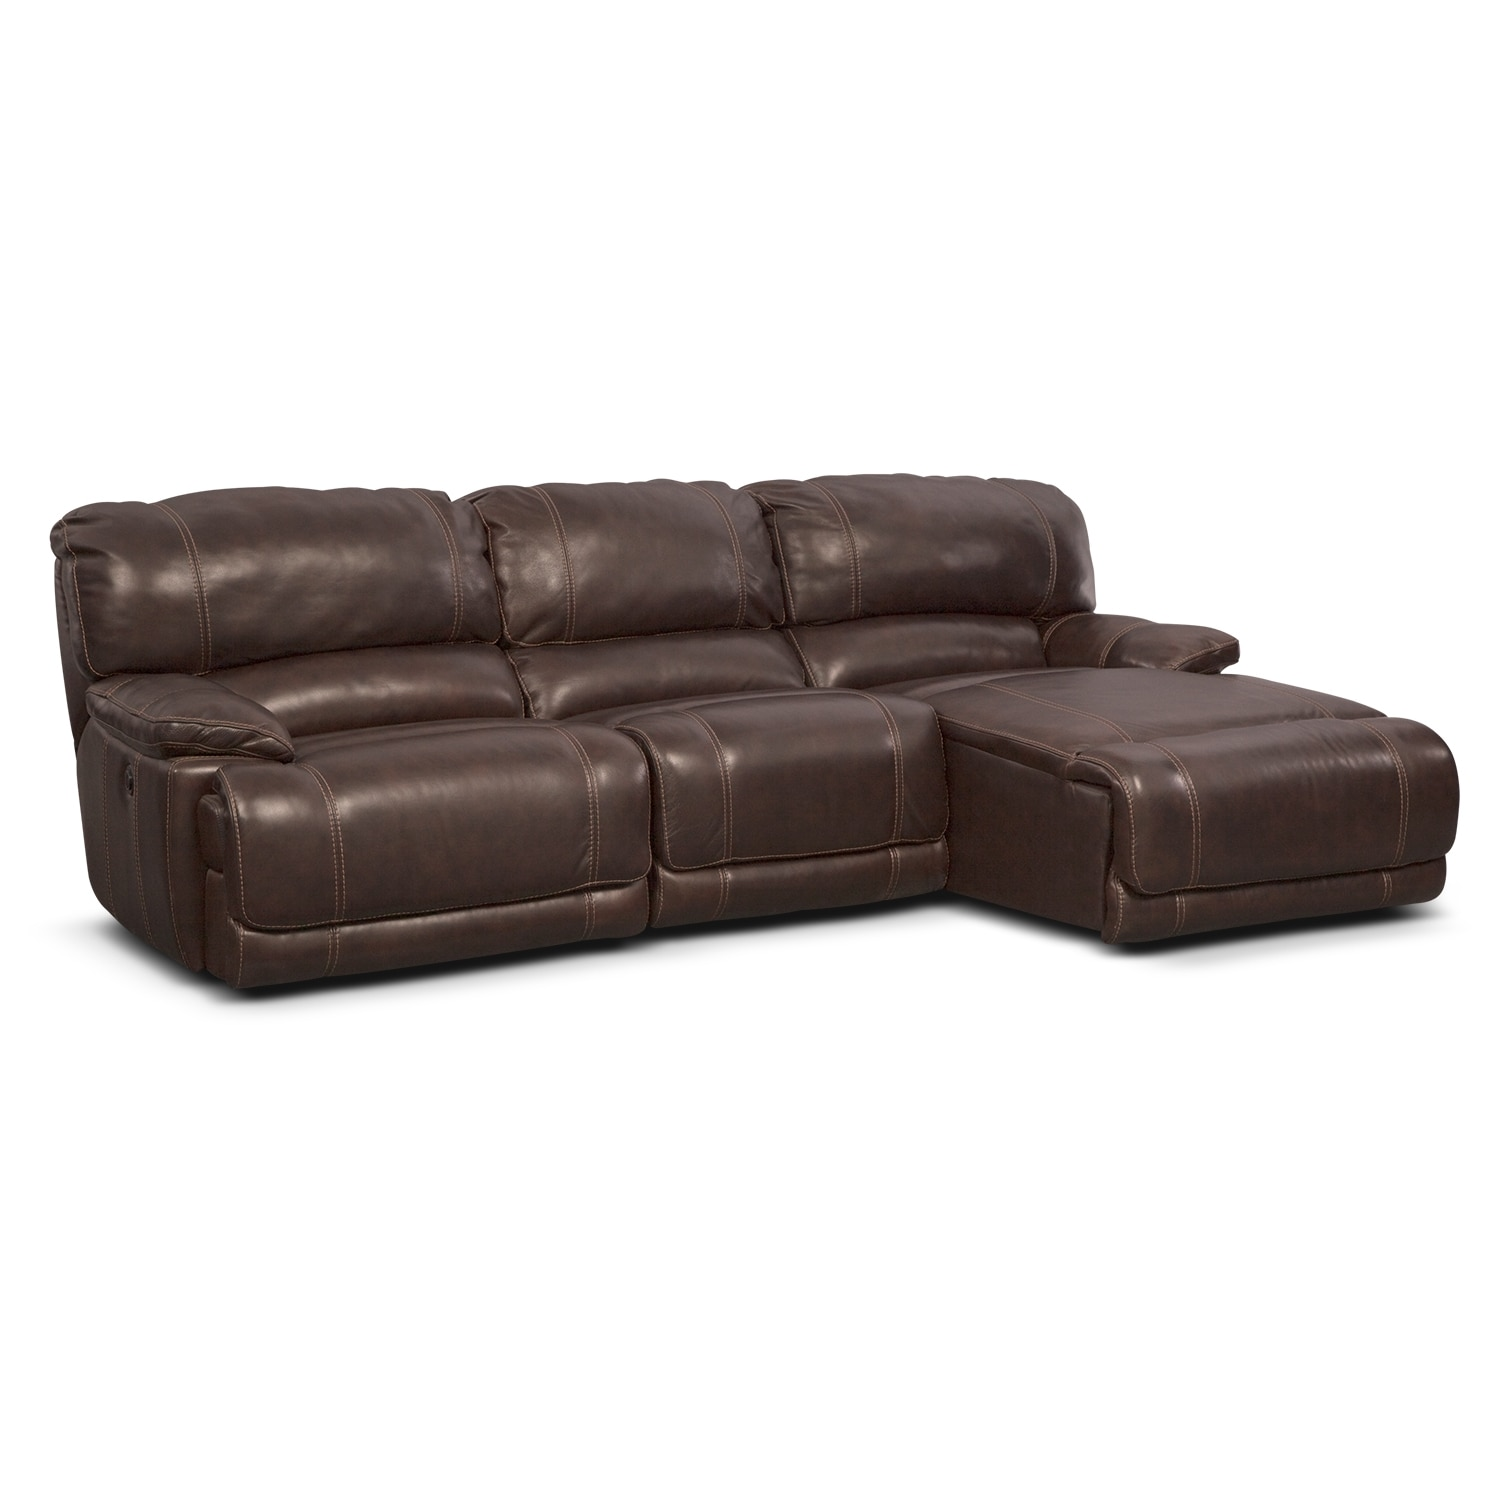 St. Malo 3-Piece Power Reclining Sectional with Chaise